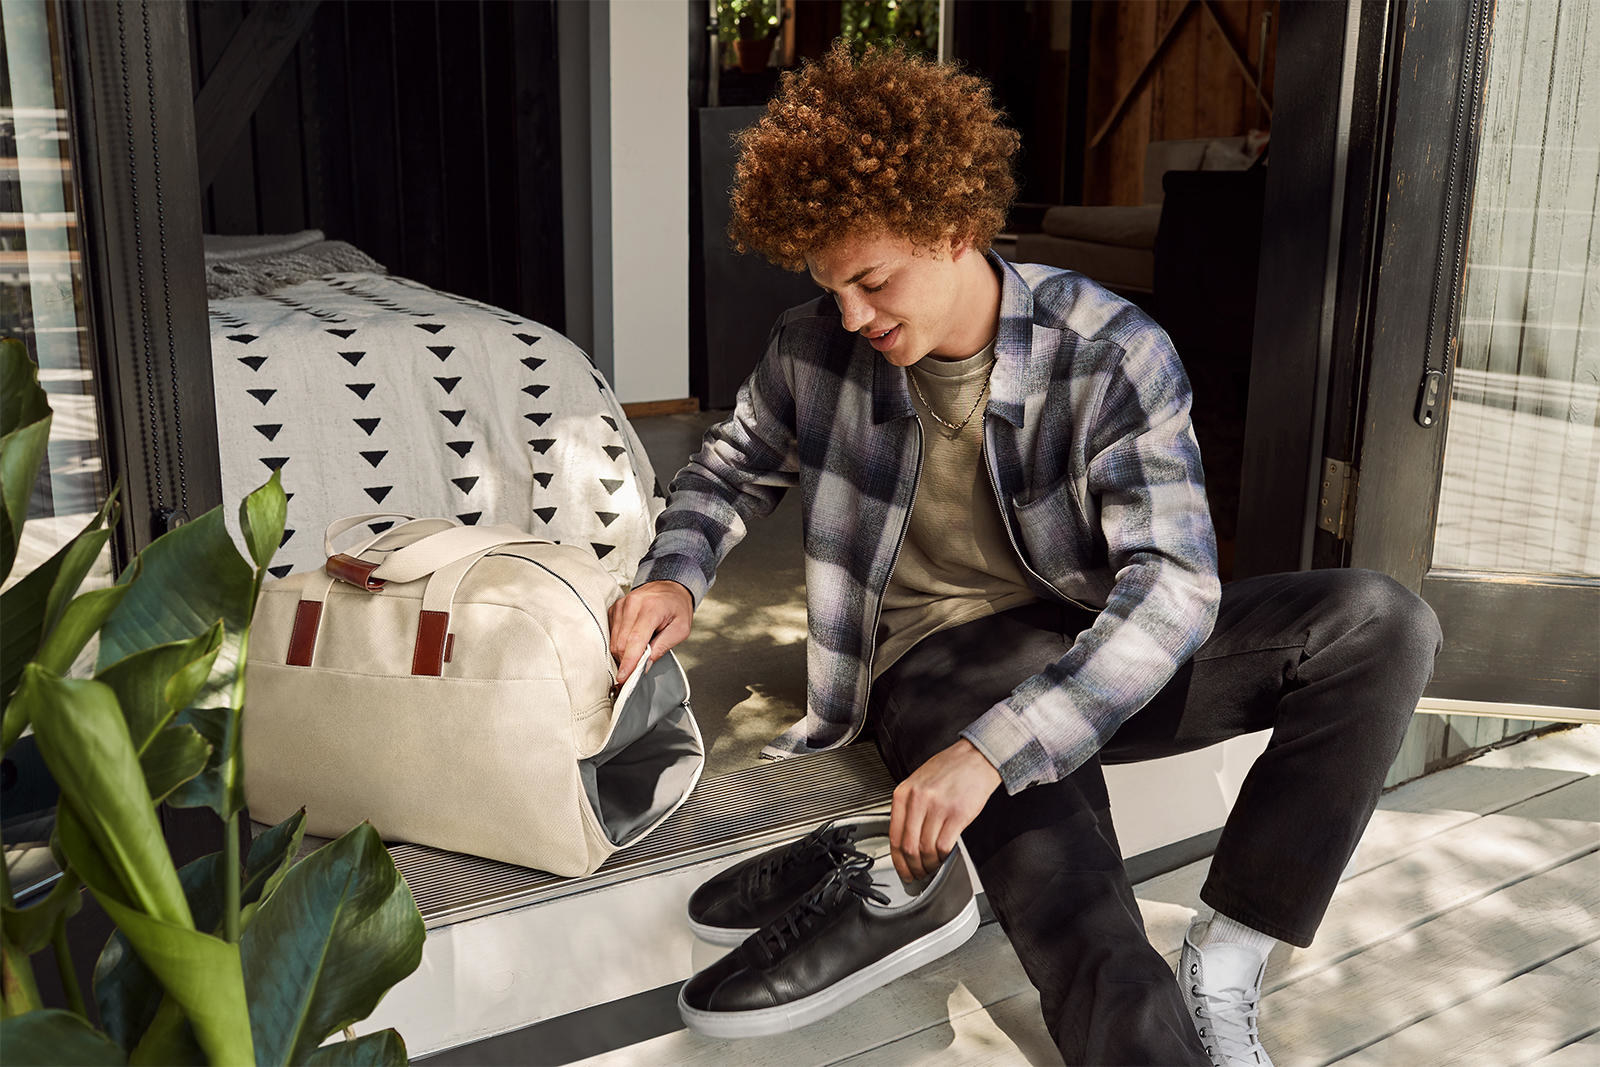 Model is putting black shoes into the shoe compartment of the cream colored duffle bag